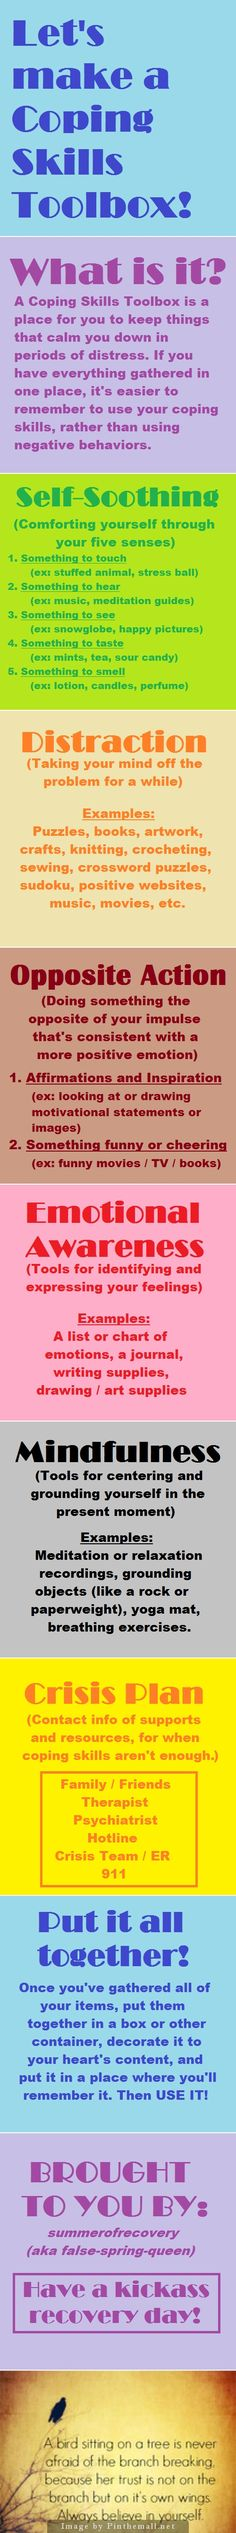 Let's make a Coping Skills Toolbox. Graphic color boxed #Infographic #emotion